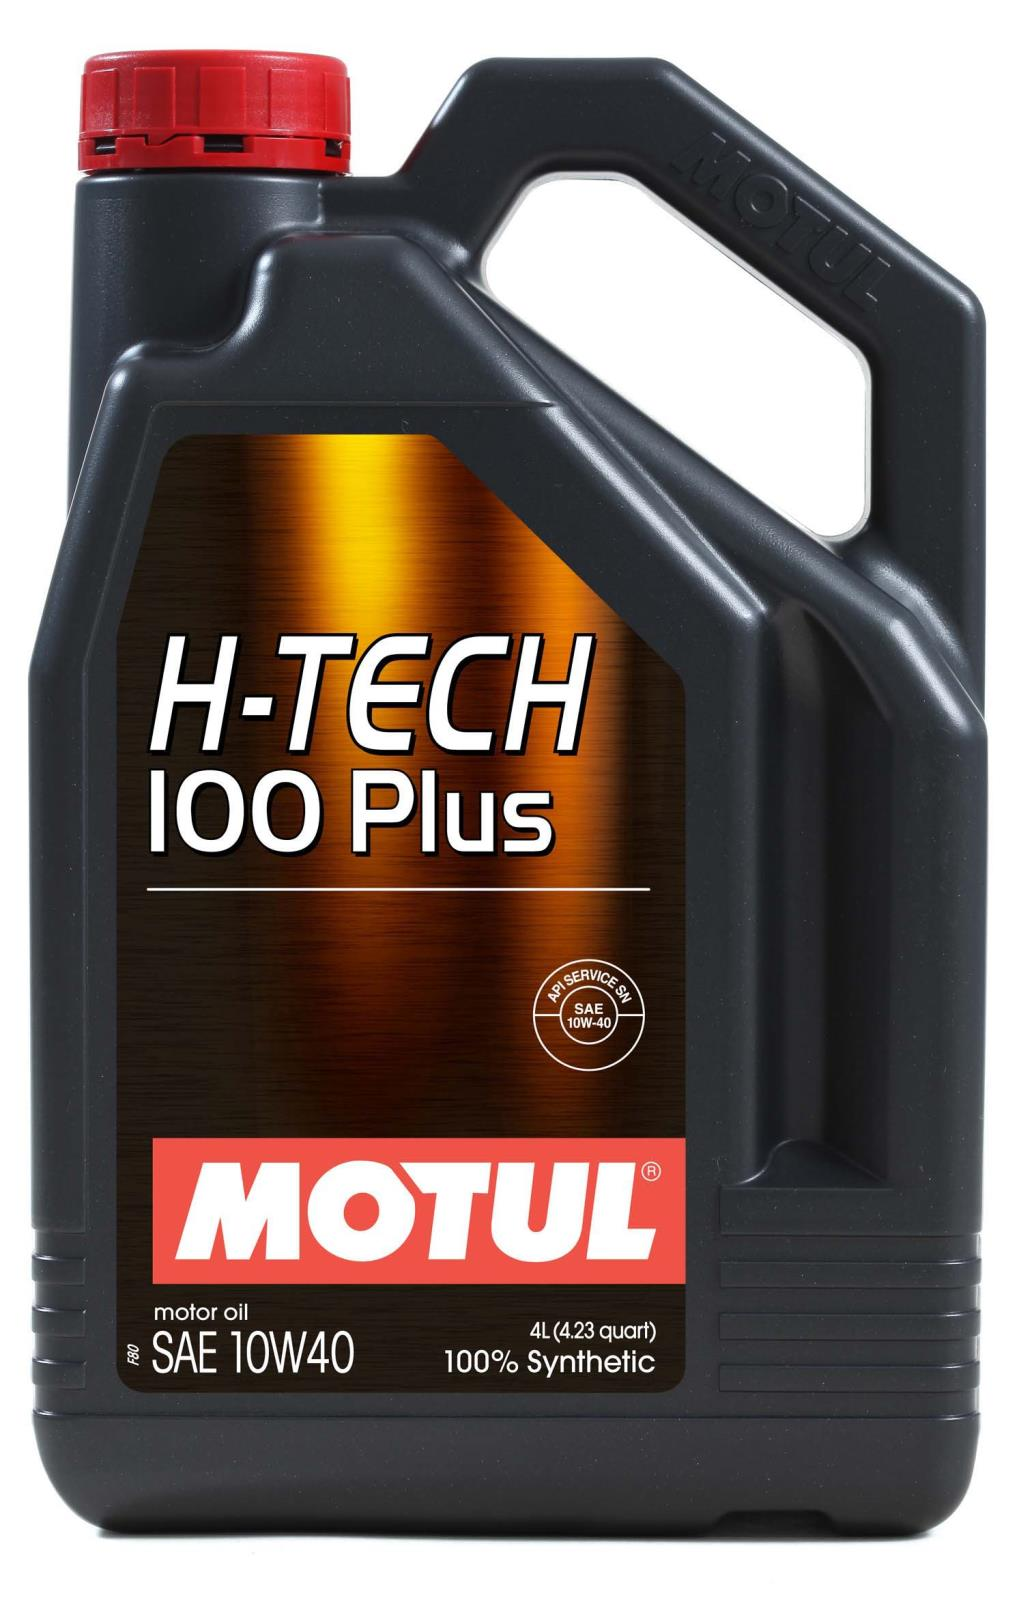 motul h-tech 100 plus 10w40 engine oil 5l fits toyota echo 1.3